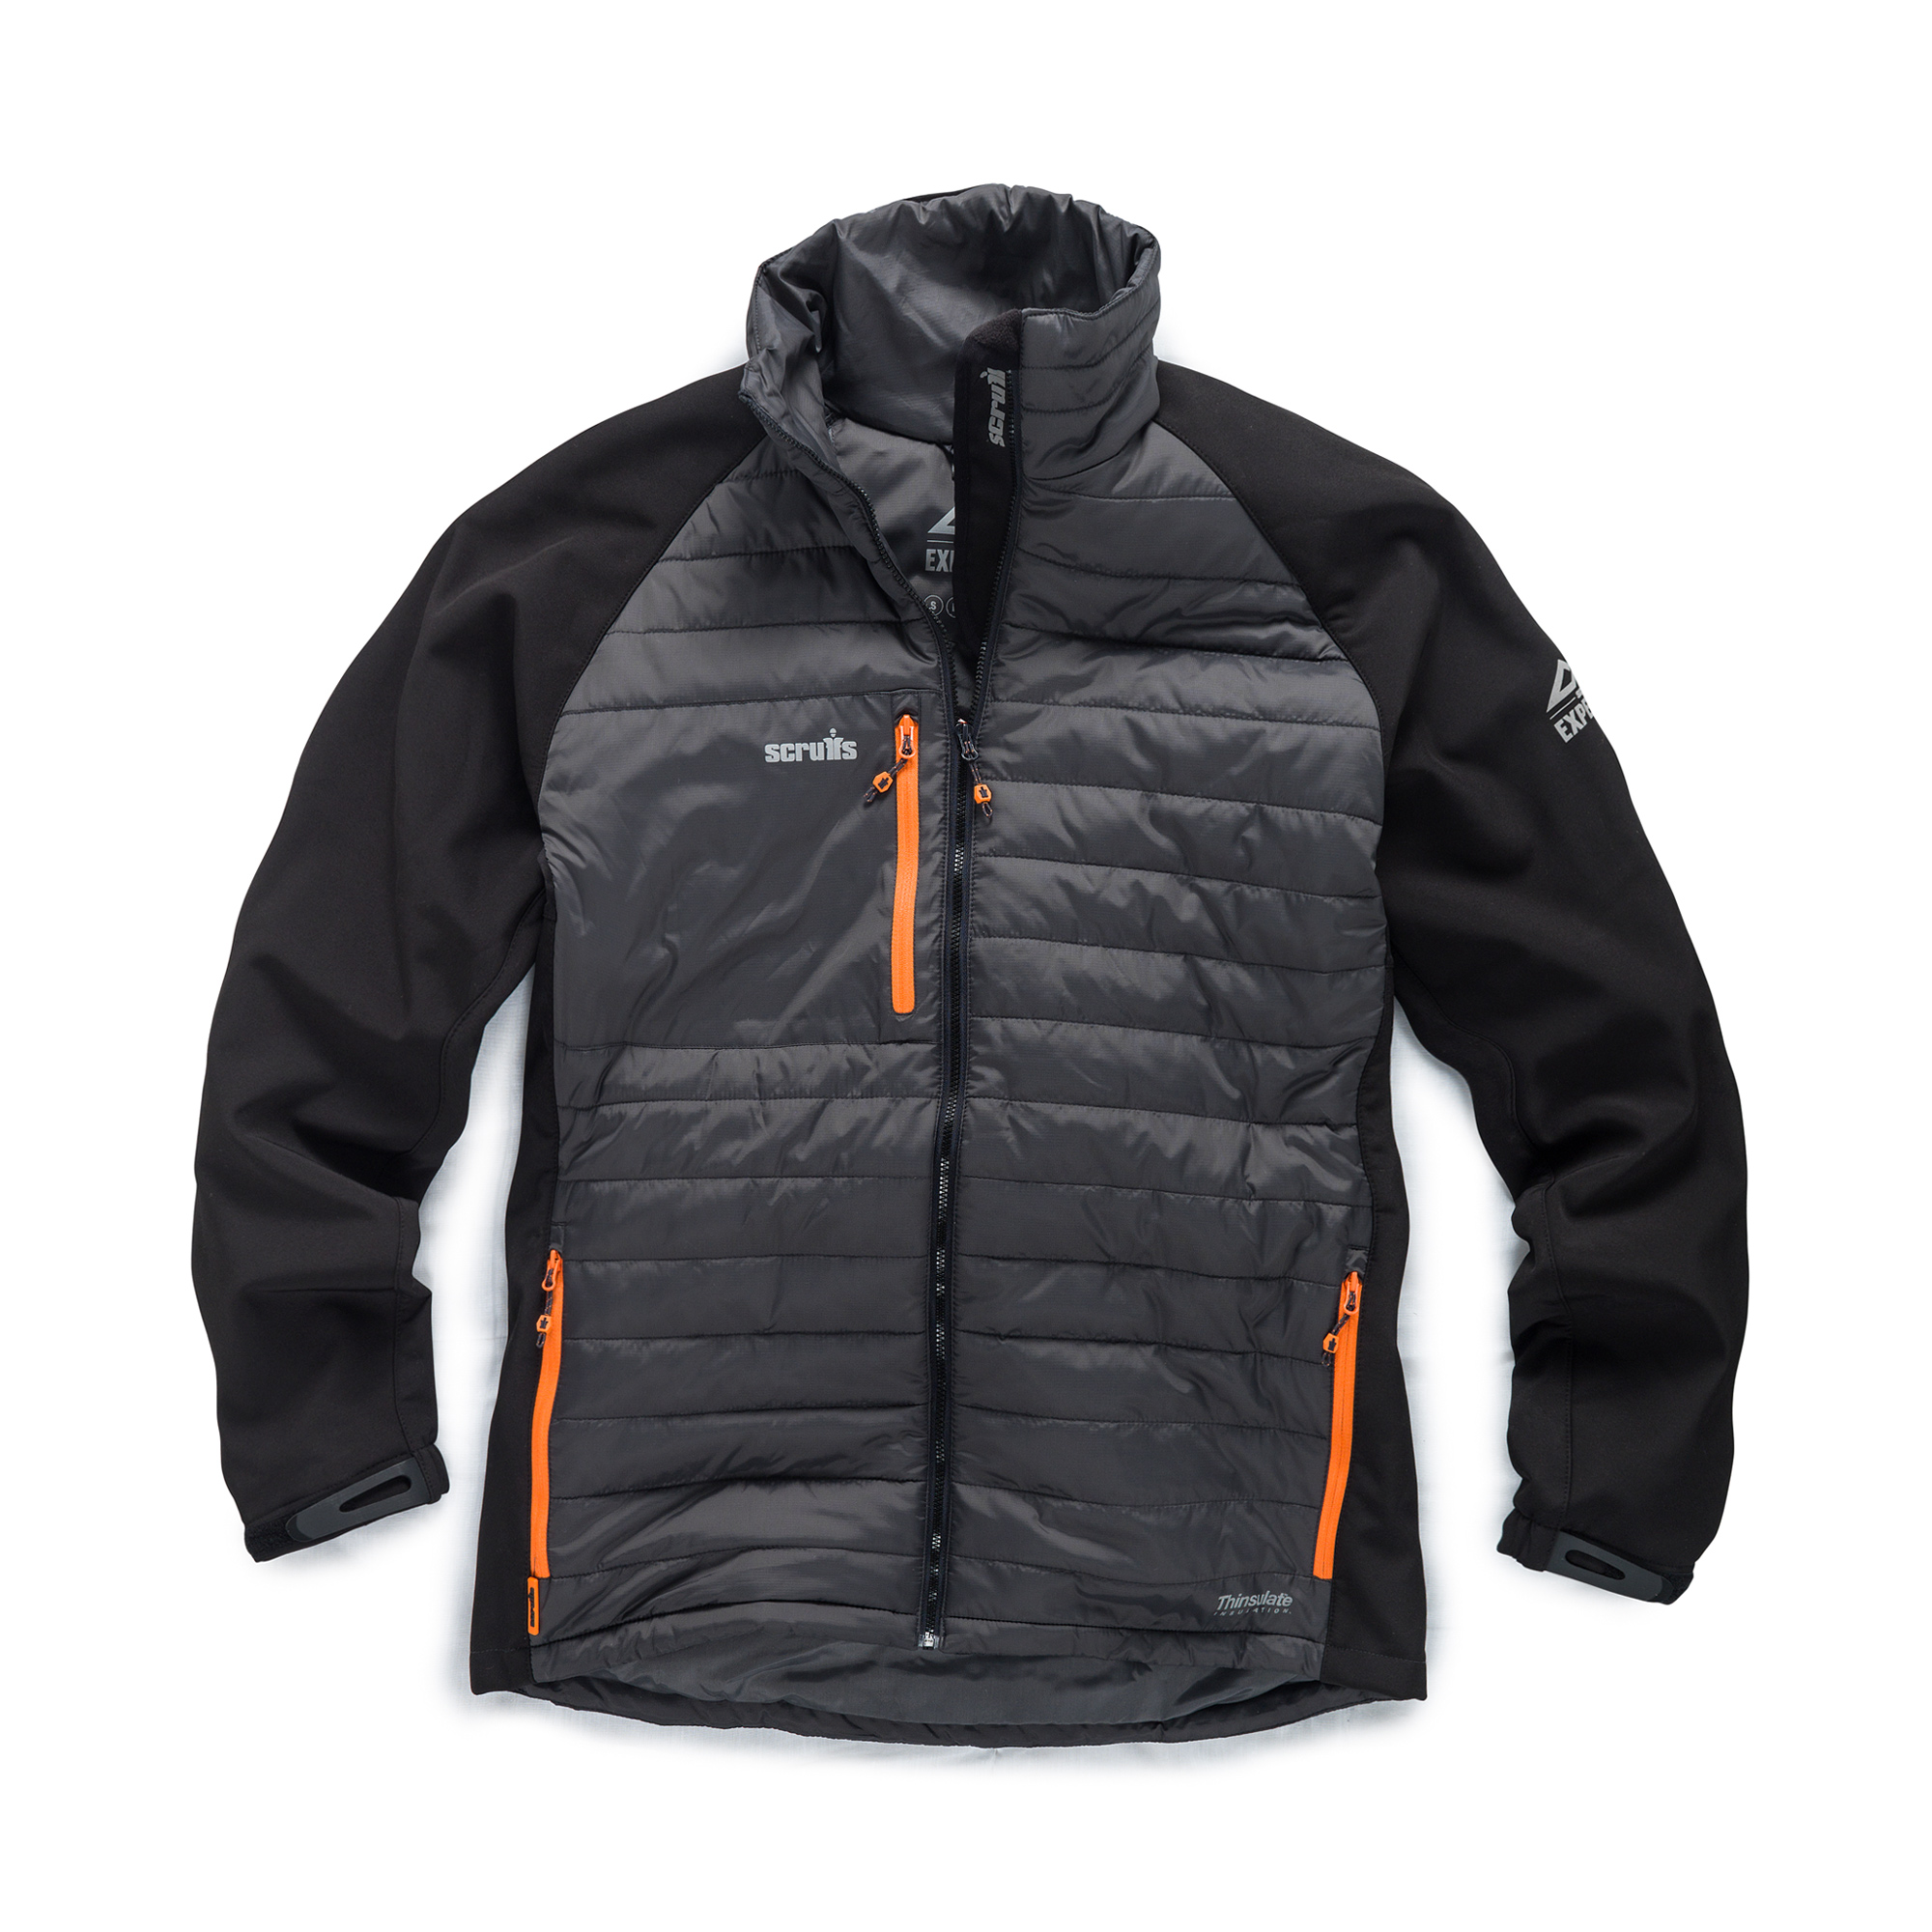 Graphite and black nylon/softshell Scruffs expedition thermo jacket with multiple pockets and contrasting grey Scruffs branding